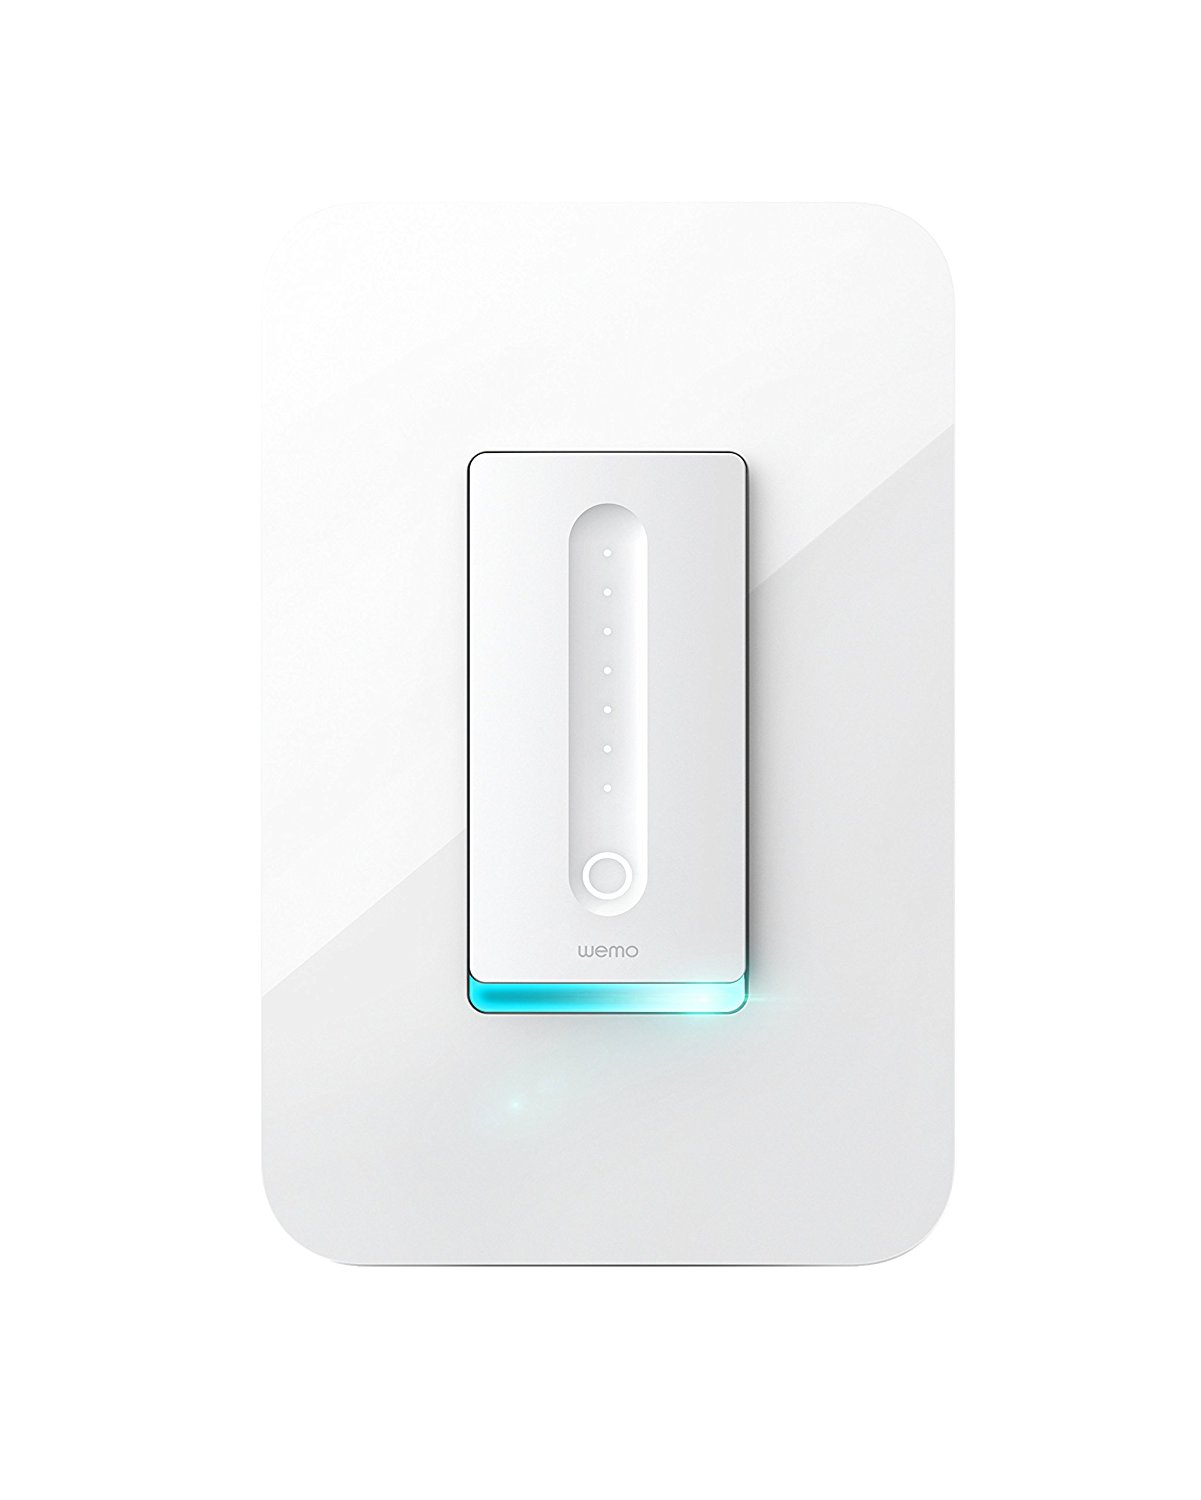 Wemo Dimmer Wi-Fi Light Switch